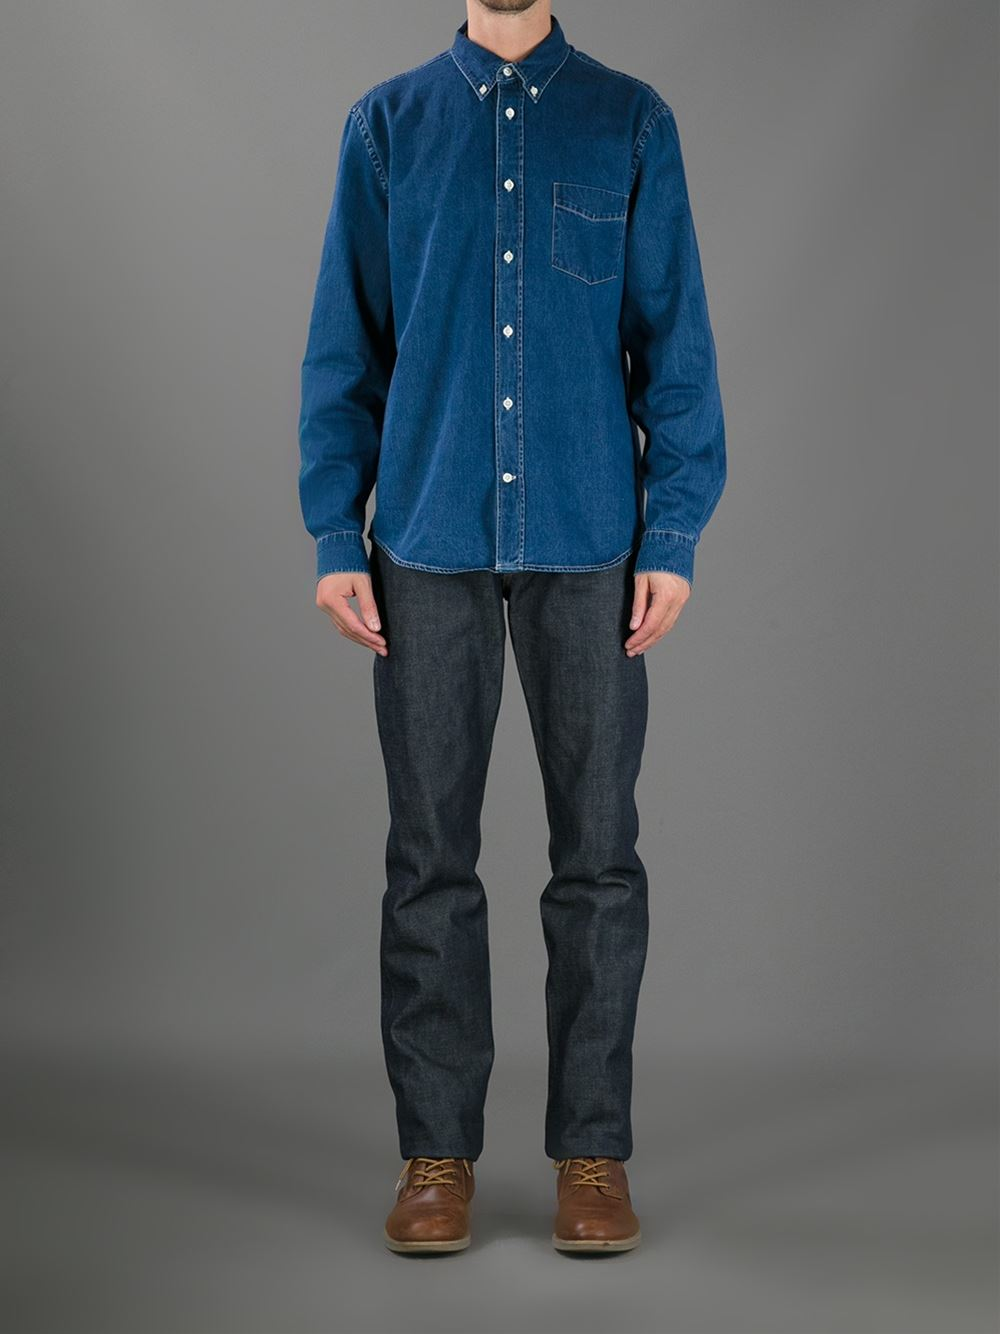 736a74737fe Acne Studios  isherwood  Denim Shirt - Sefton Men - Farfetch.com